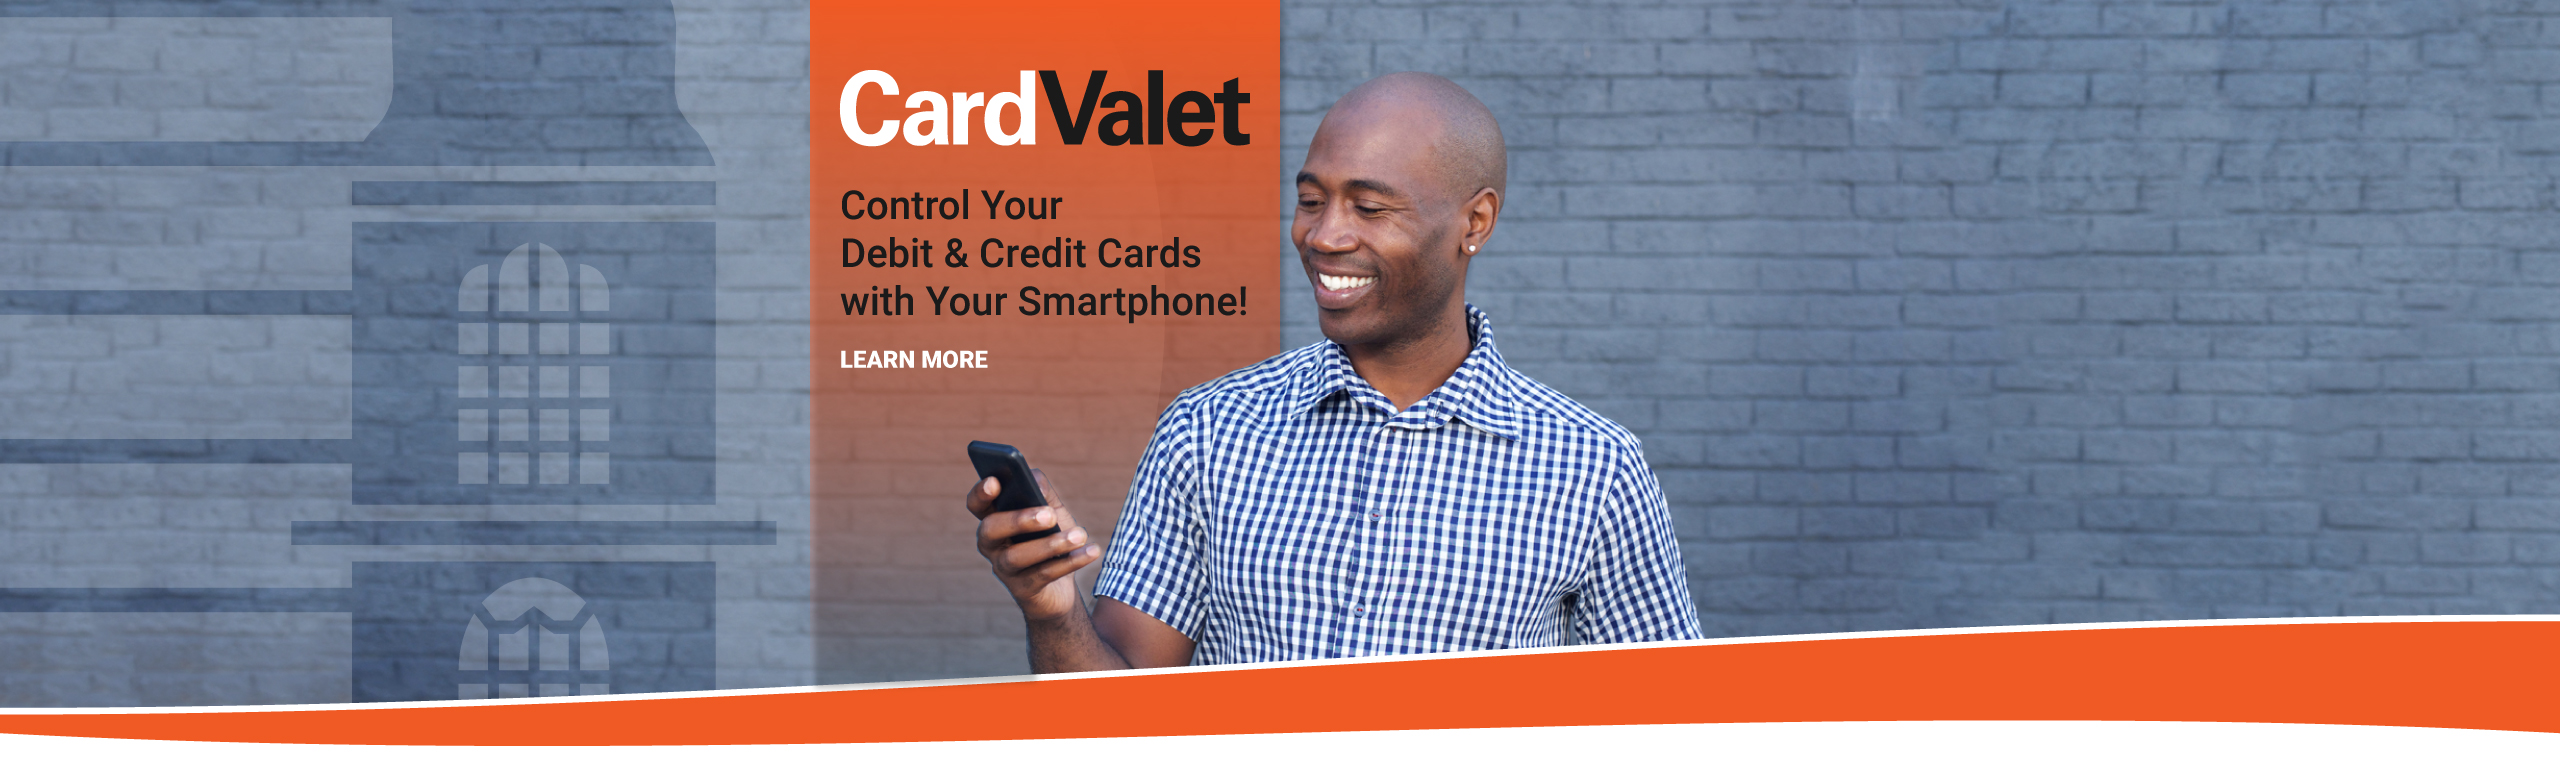 CardValet: Control You Debit and Credit Cards with Your Smartphone. Learn more.